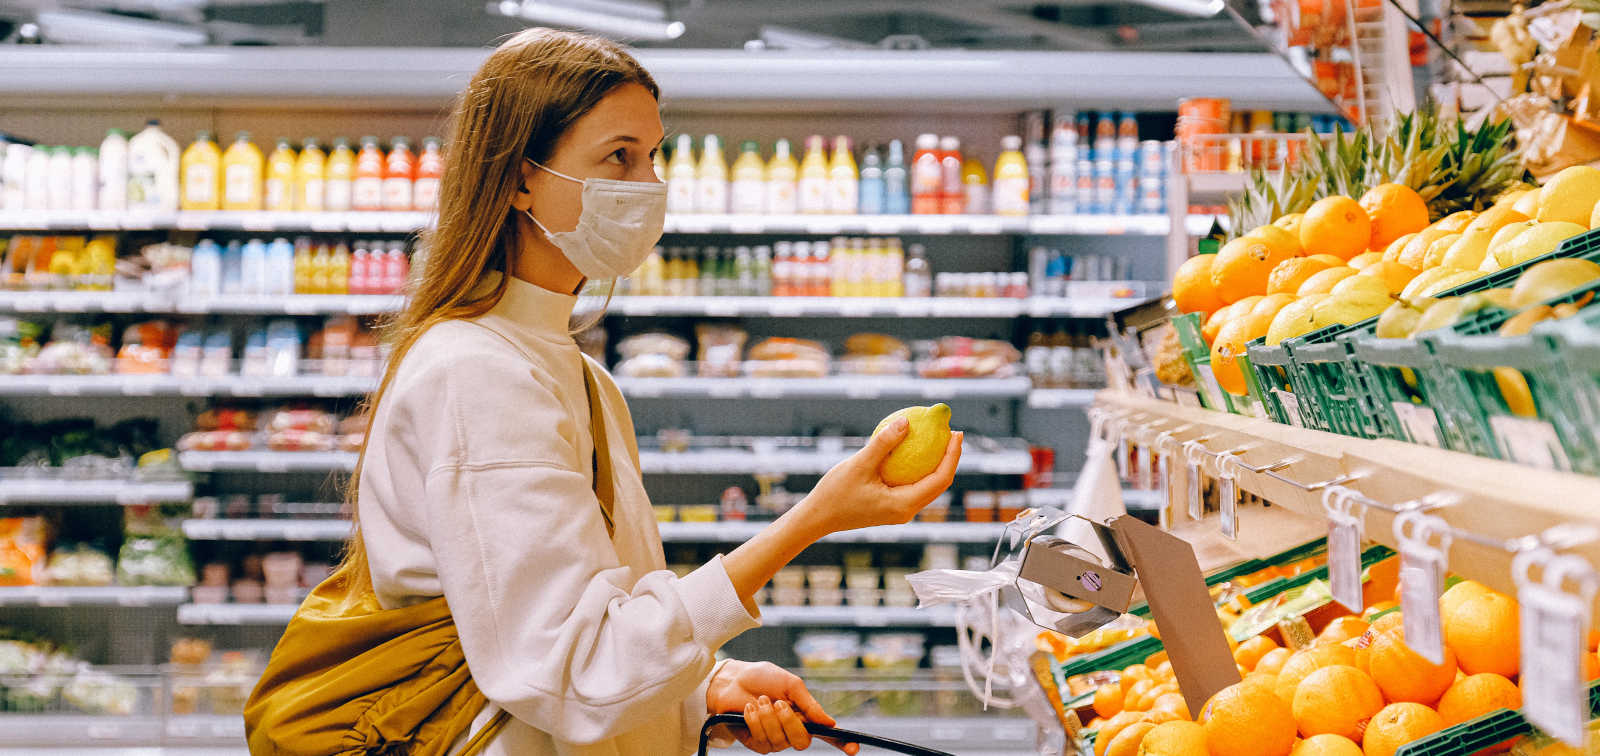 Women wearing a mask and buying